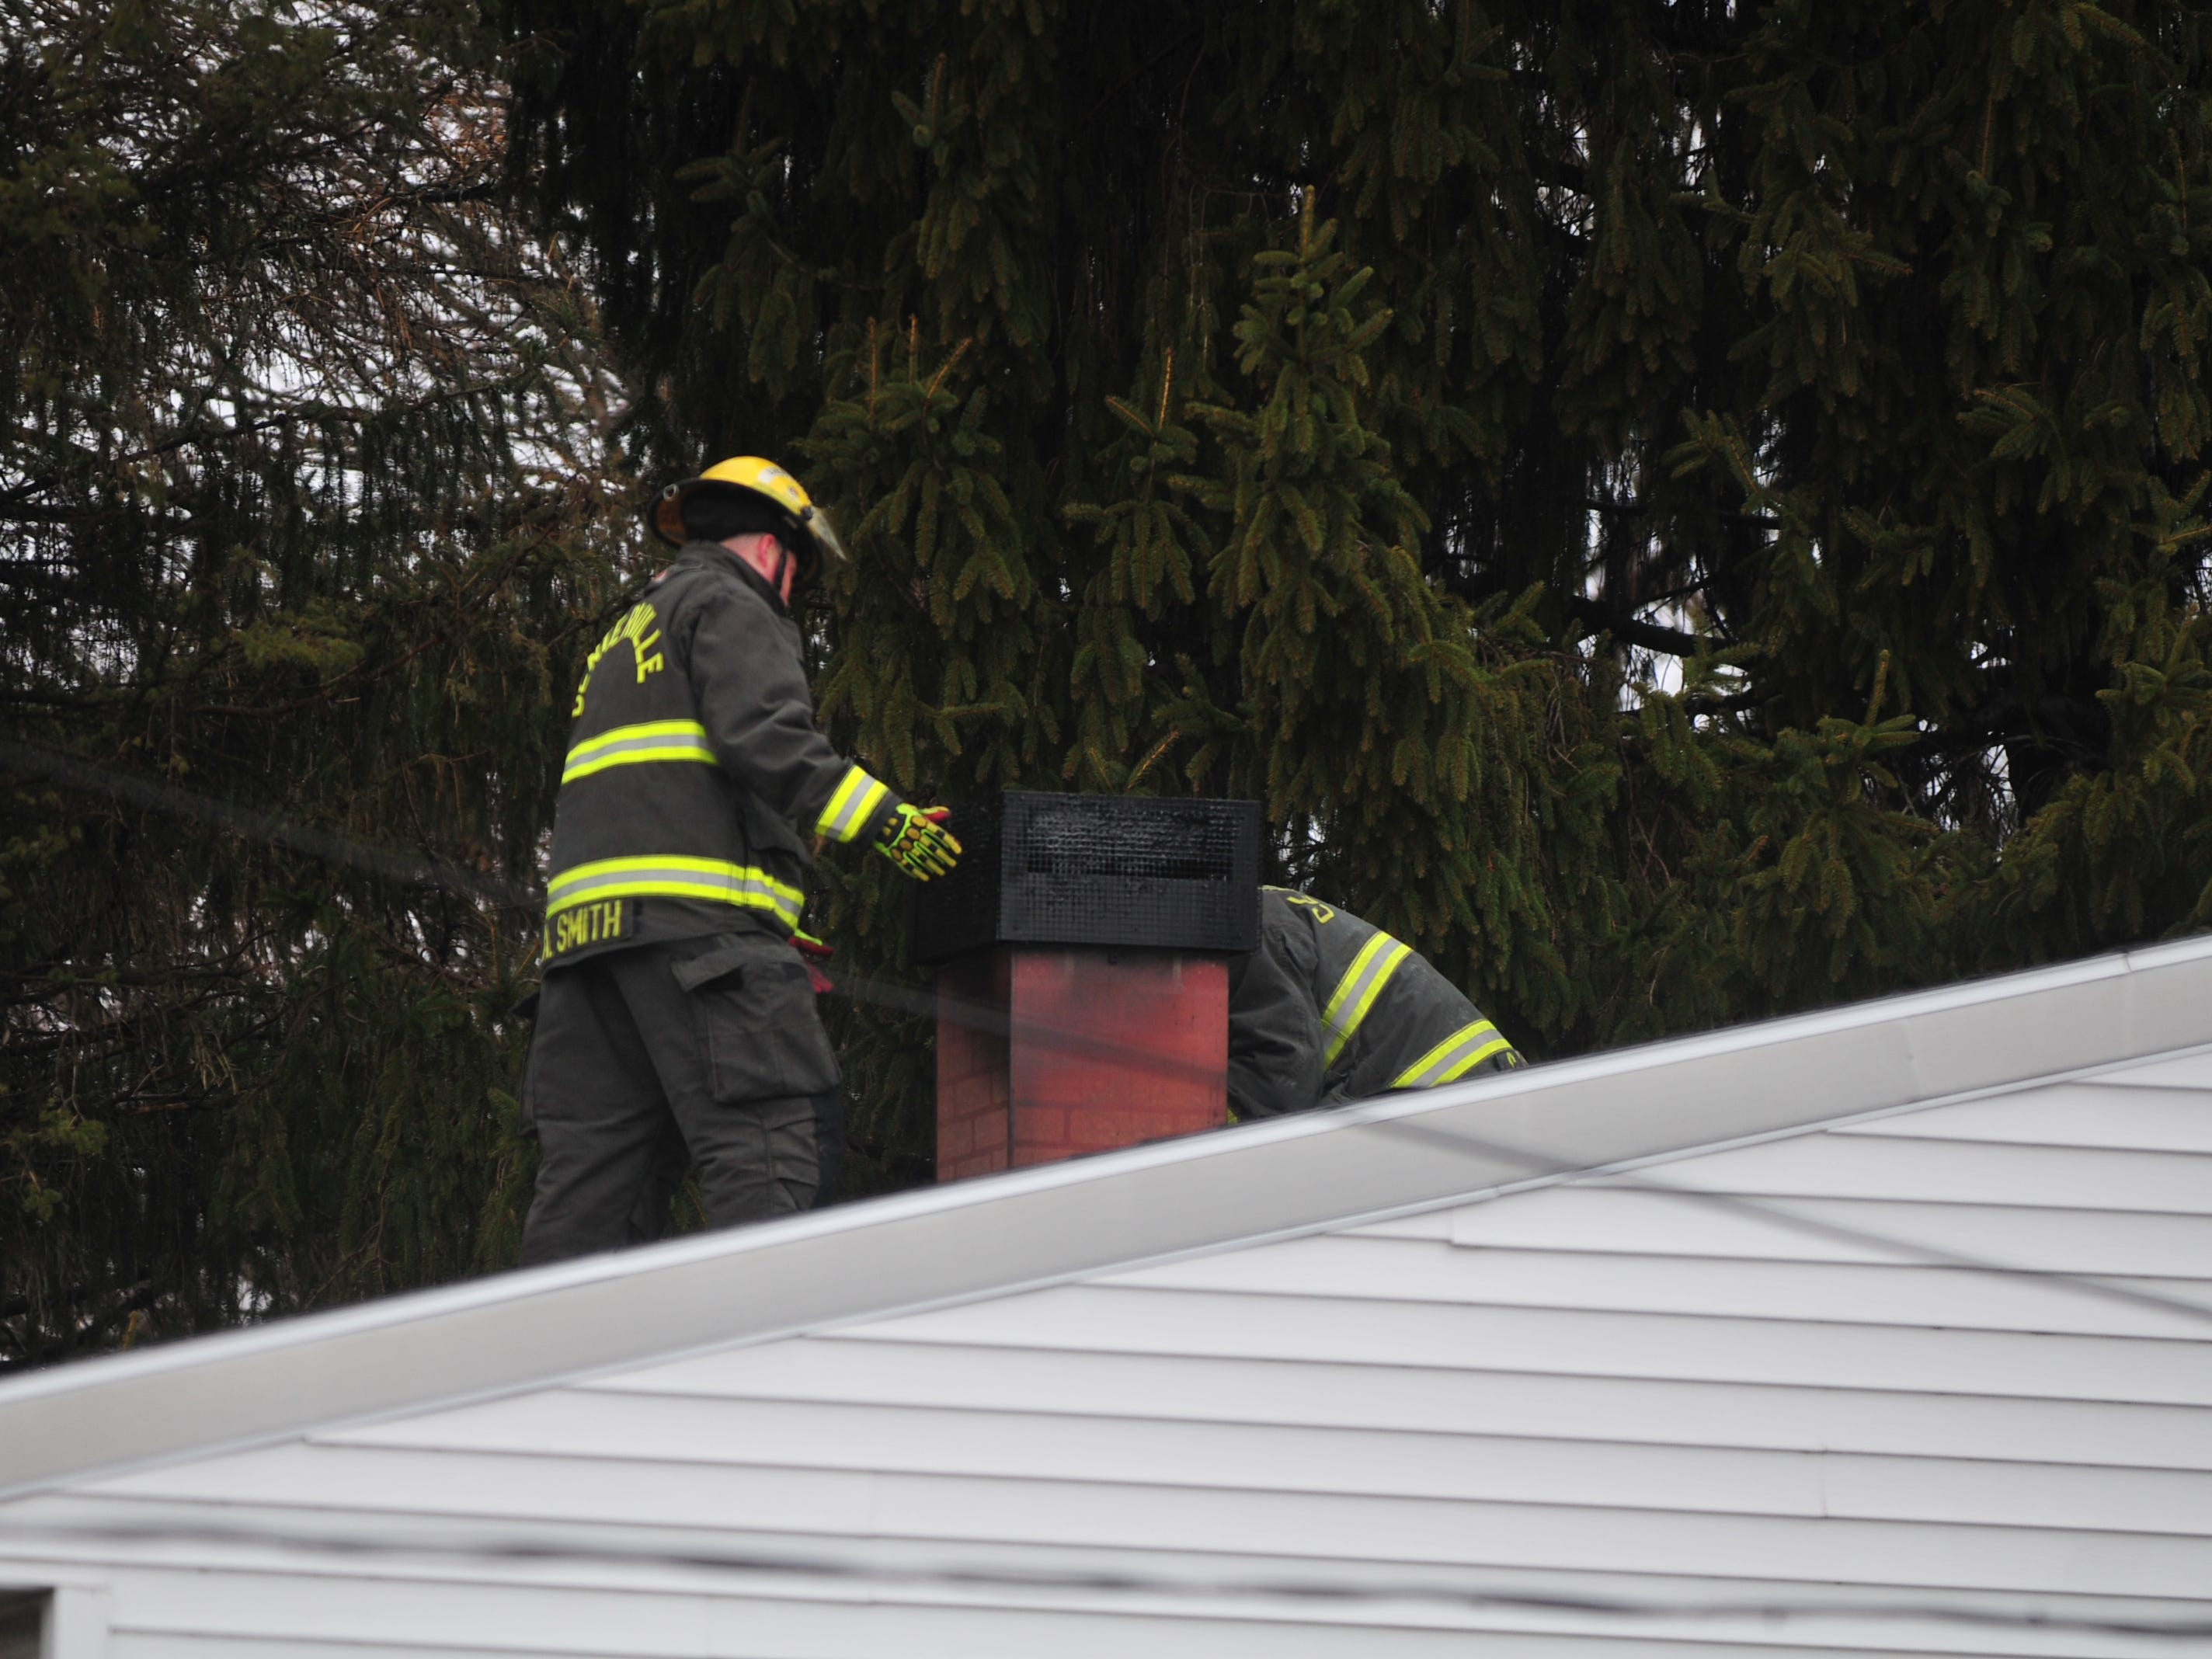 Firefighters work on the roof after responding to the 6800 block of U.S. 40 West for a chimney fire.